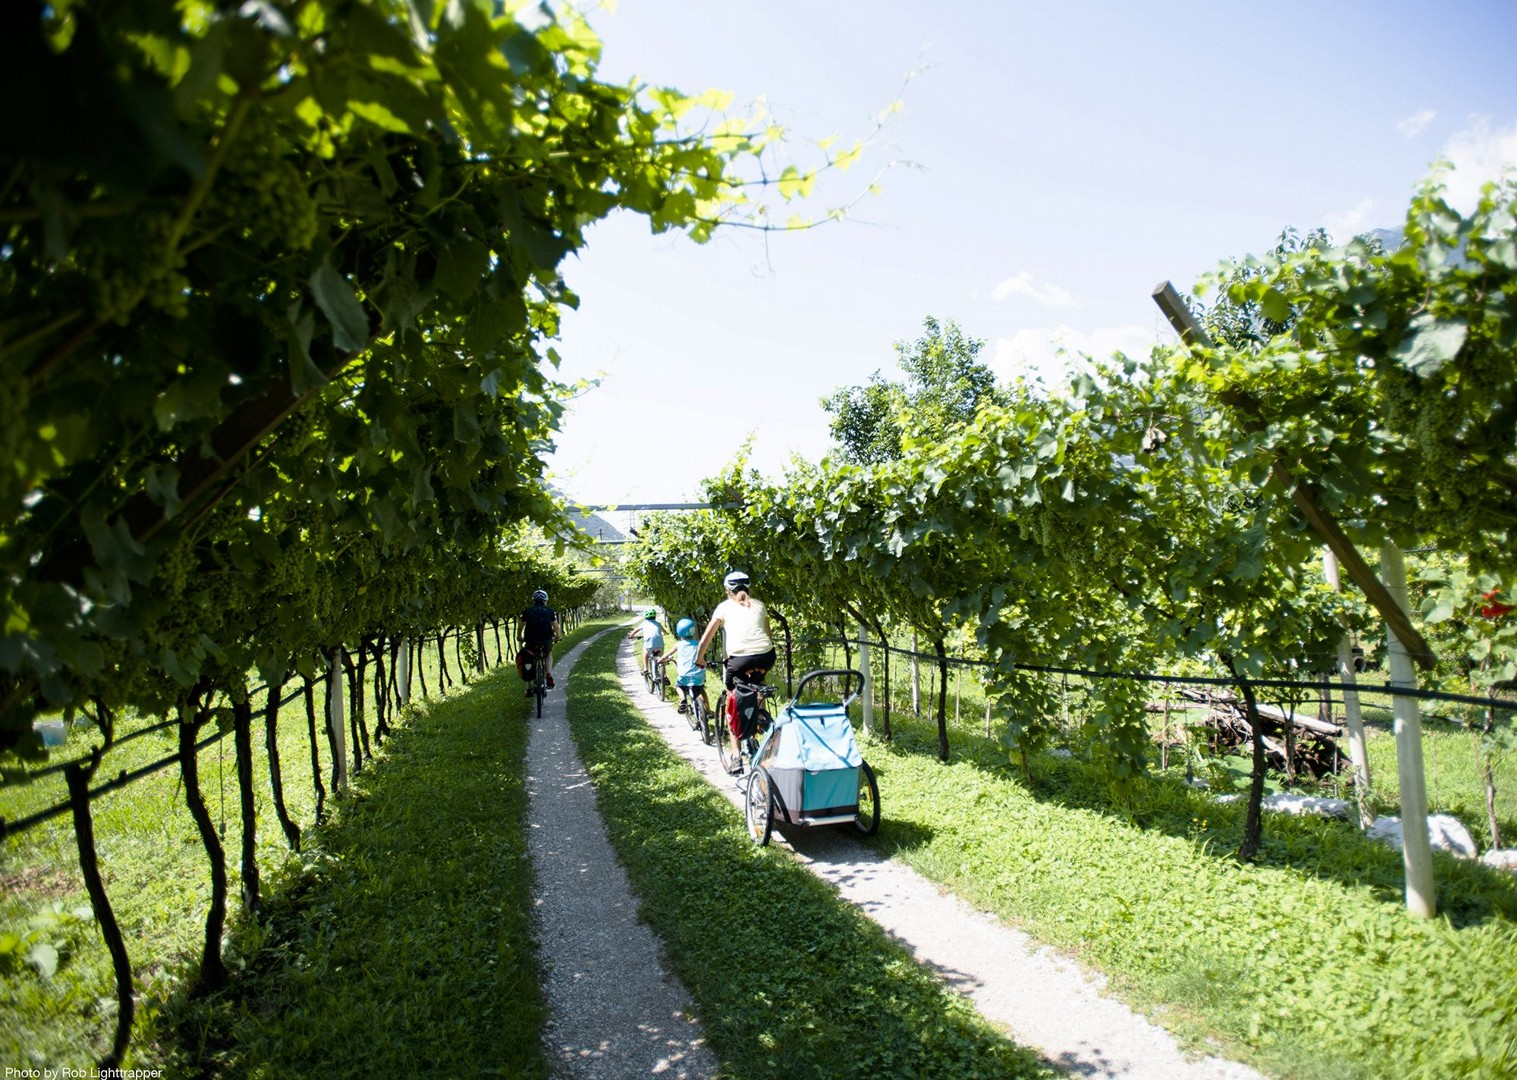 vineyard-italy-cycling-self-guided.jpg - Italy - Lake Garda Explorer - Self-Guided Family Cycling Holiday - Italia Leisure and Family Cycling